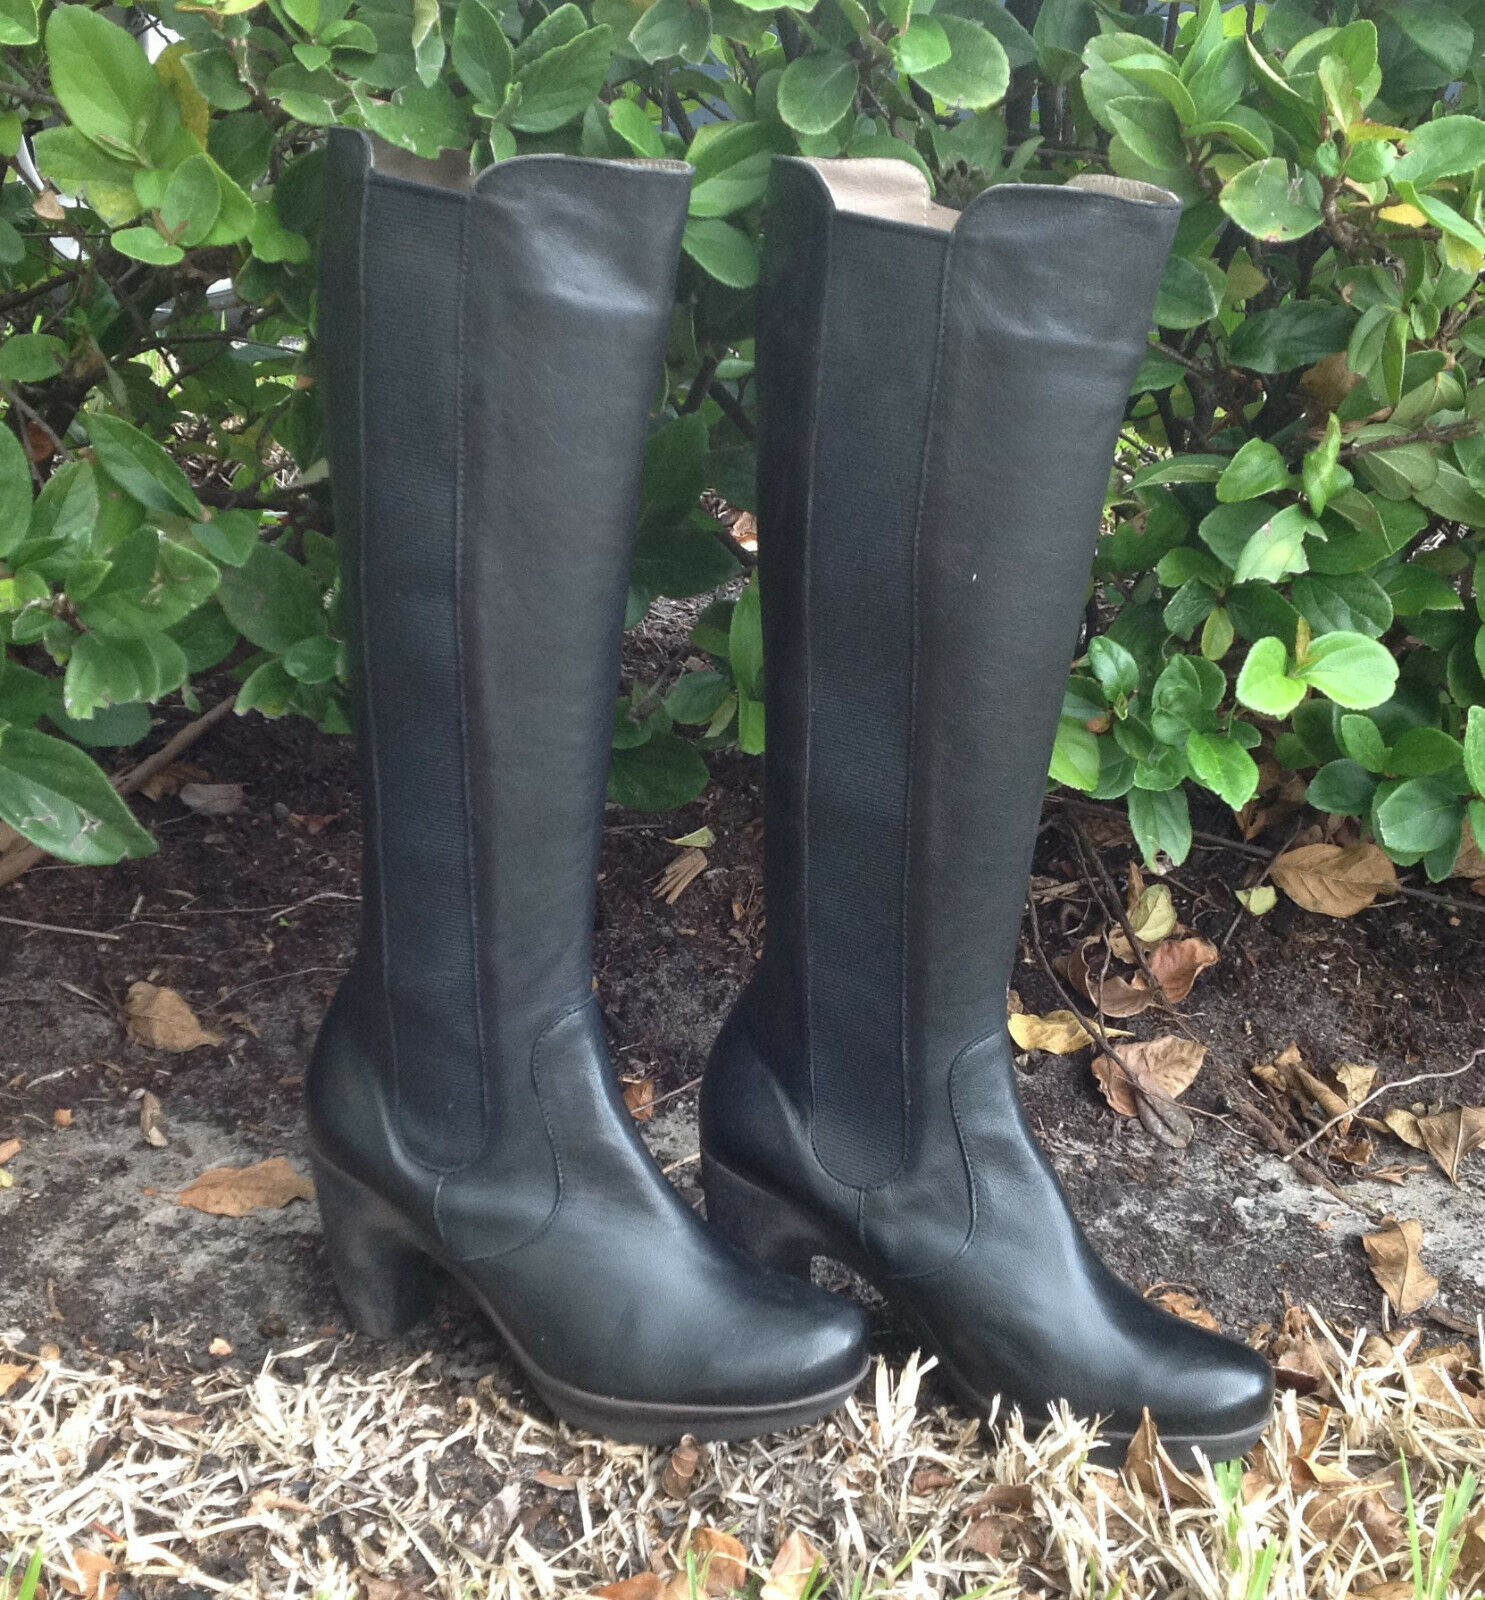 Web Black Leather Boots 0396 Kay Valeria Size Eur 37 US 5